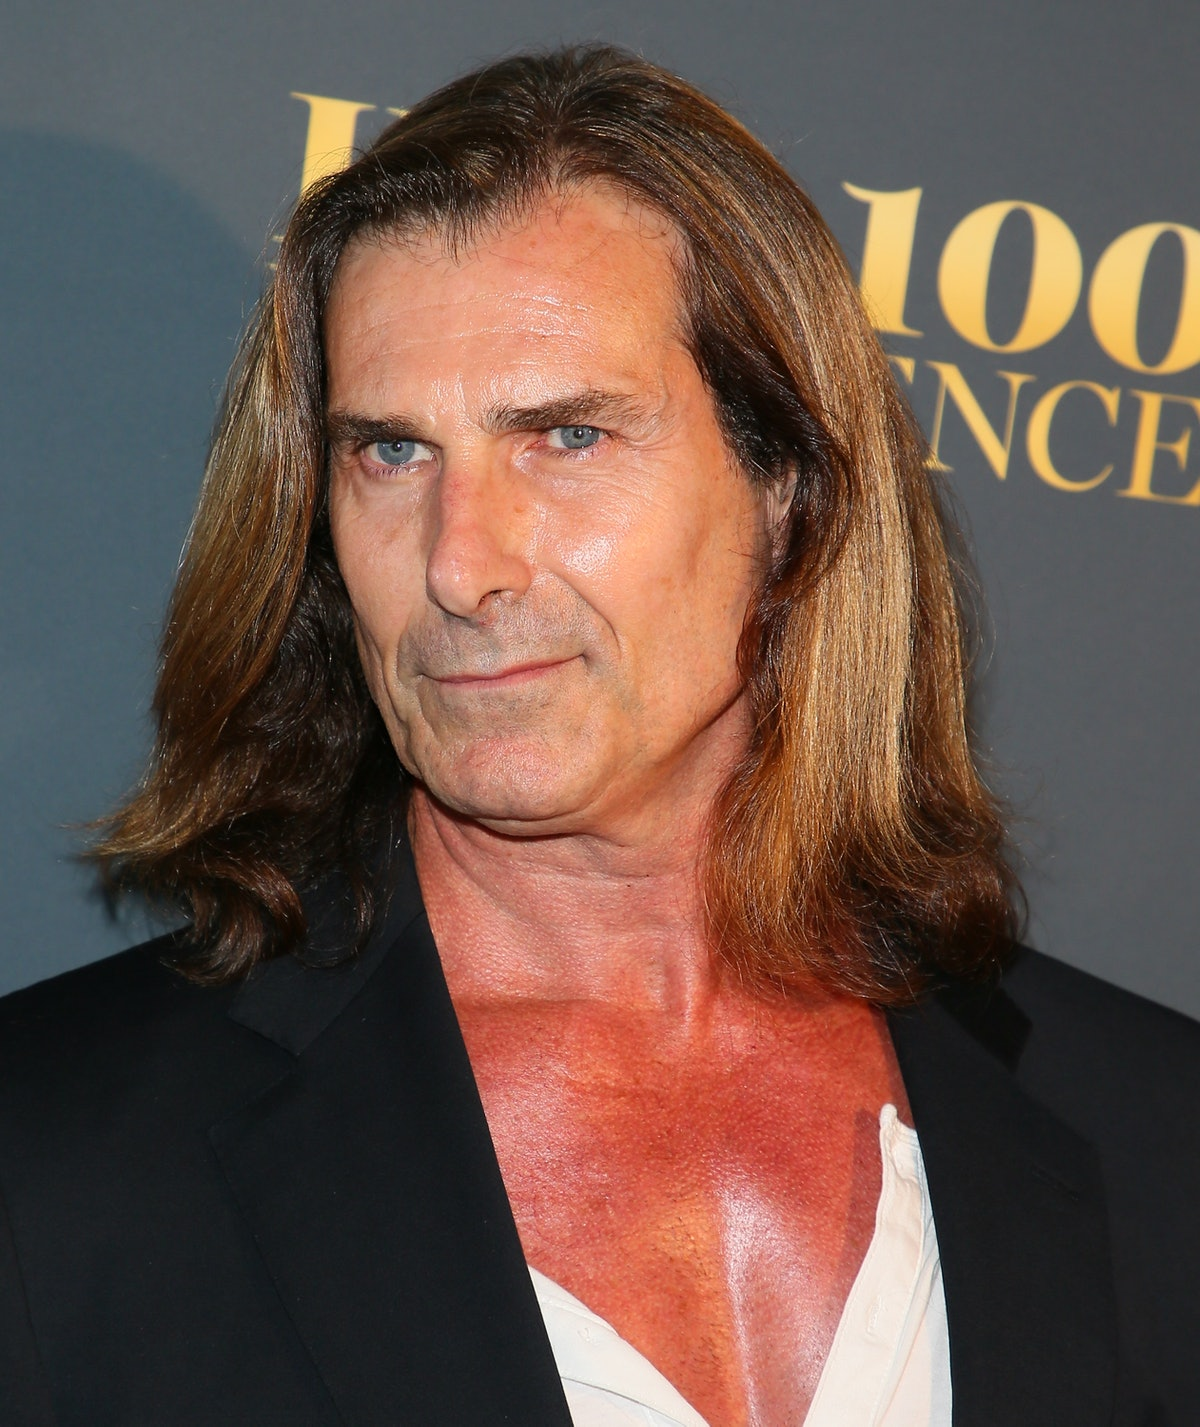 LOS ANGELES, CA - JULY 21: Fabio Lanzoni attends the Maxim Hot 100 Experience at Hollywood Palladium...